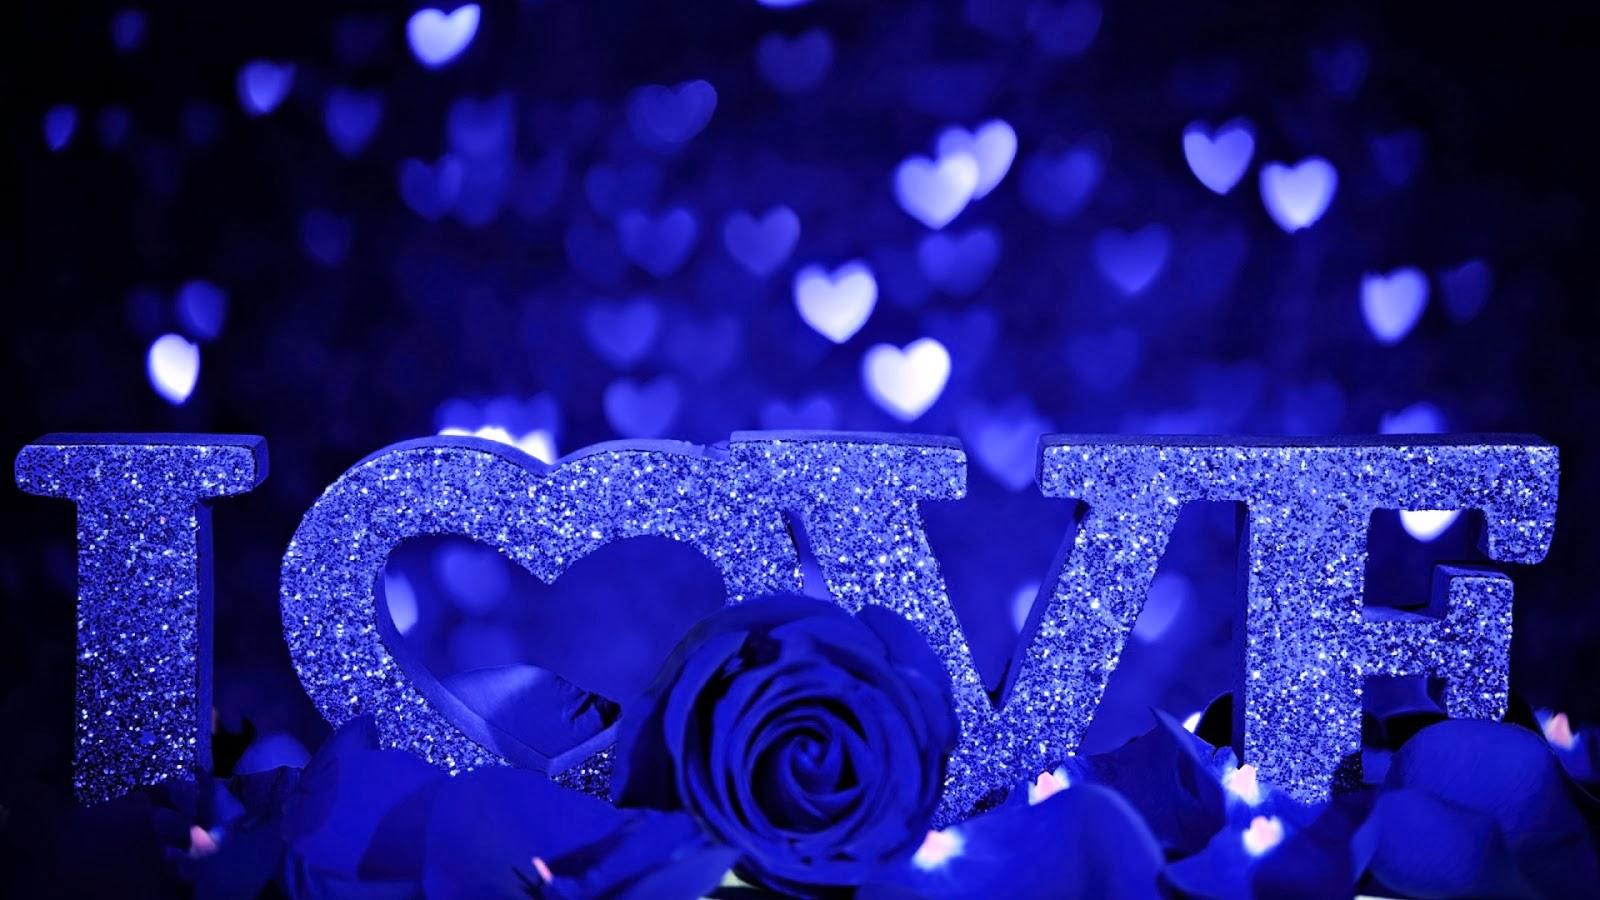 Blue Rose I Love You